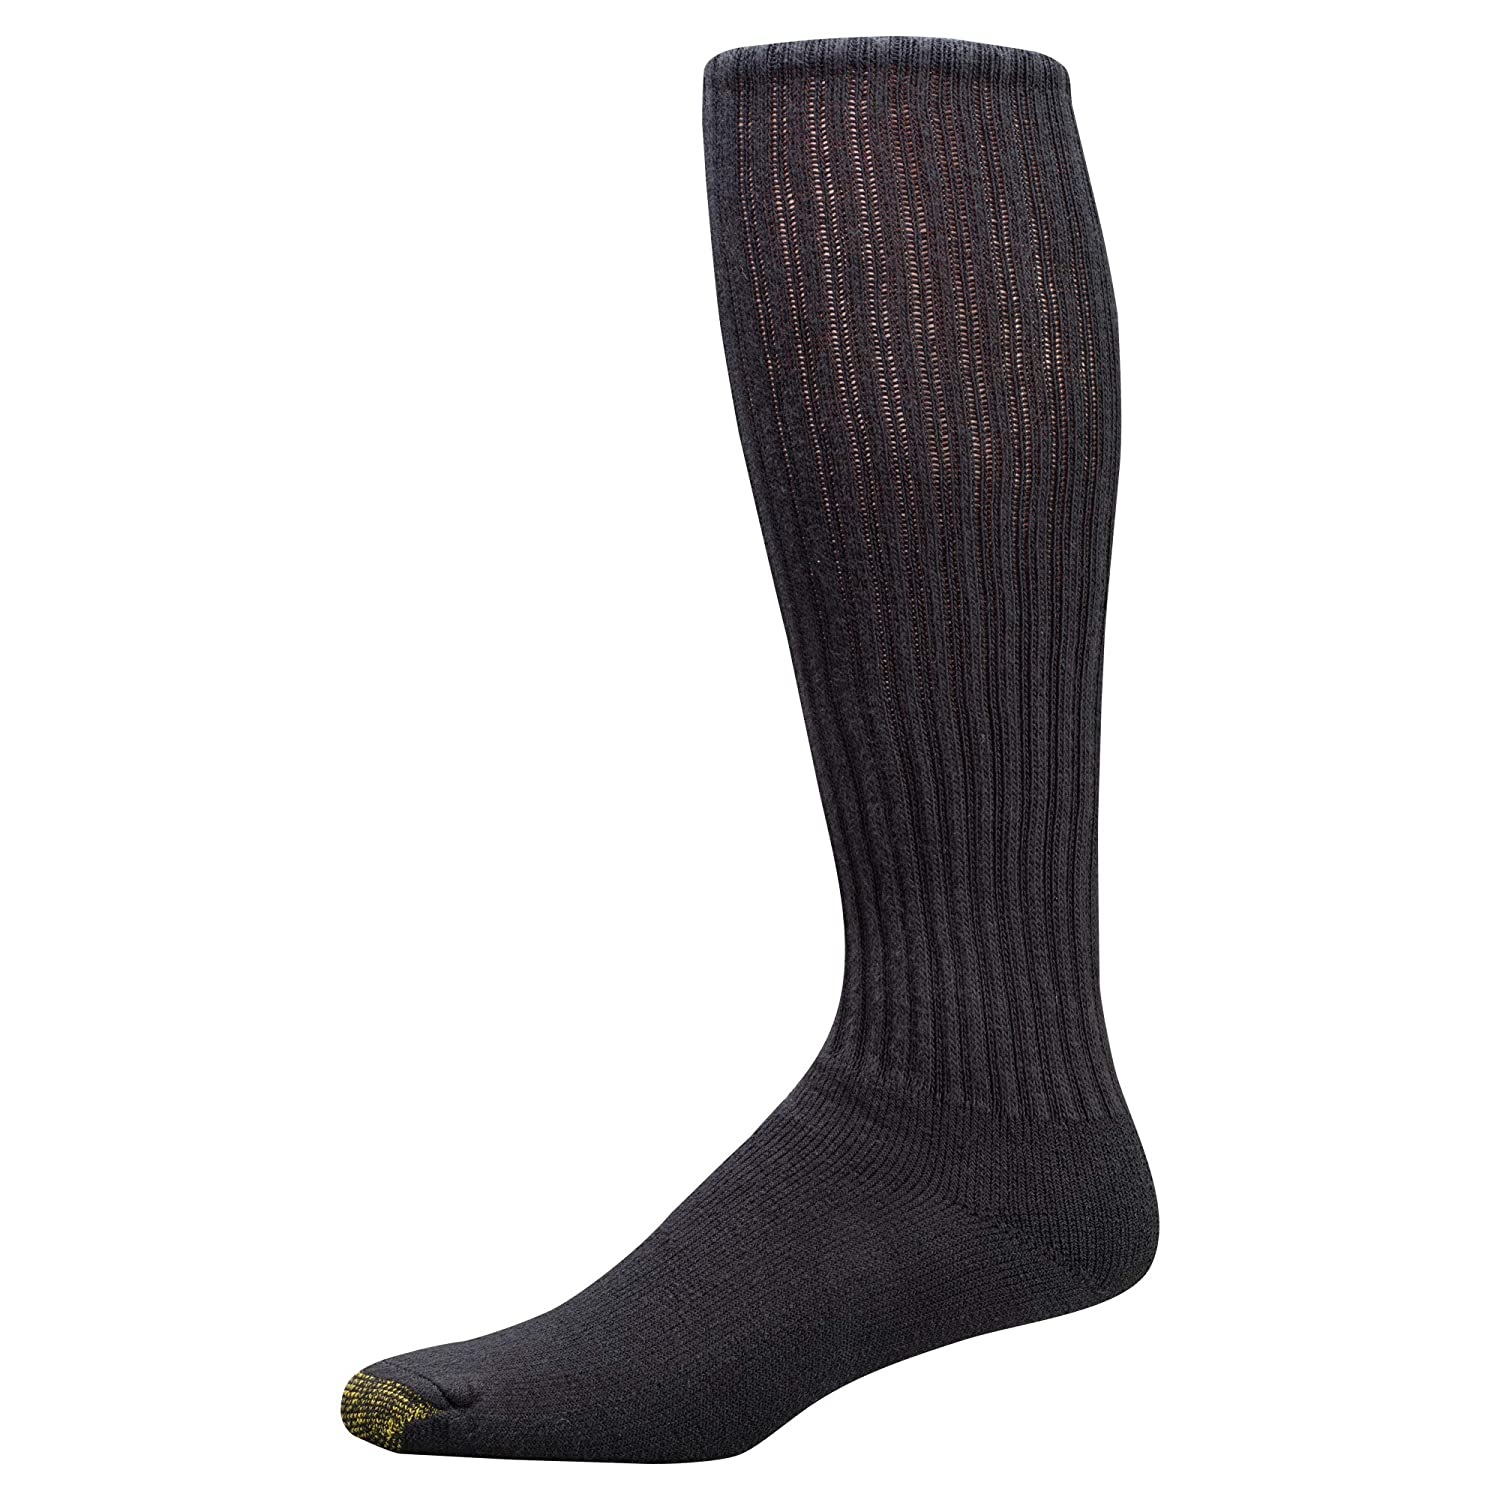 3-Pack Gold Toe Mens Cotton Over-the-Calf Athletic Socks